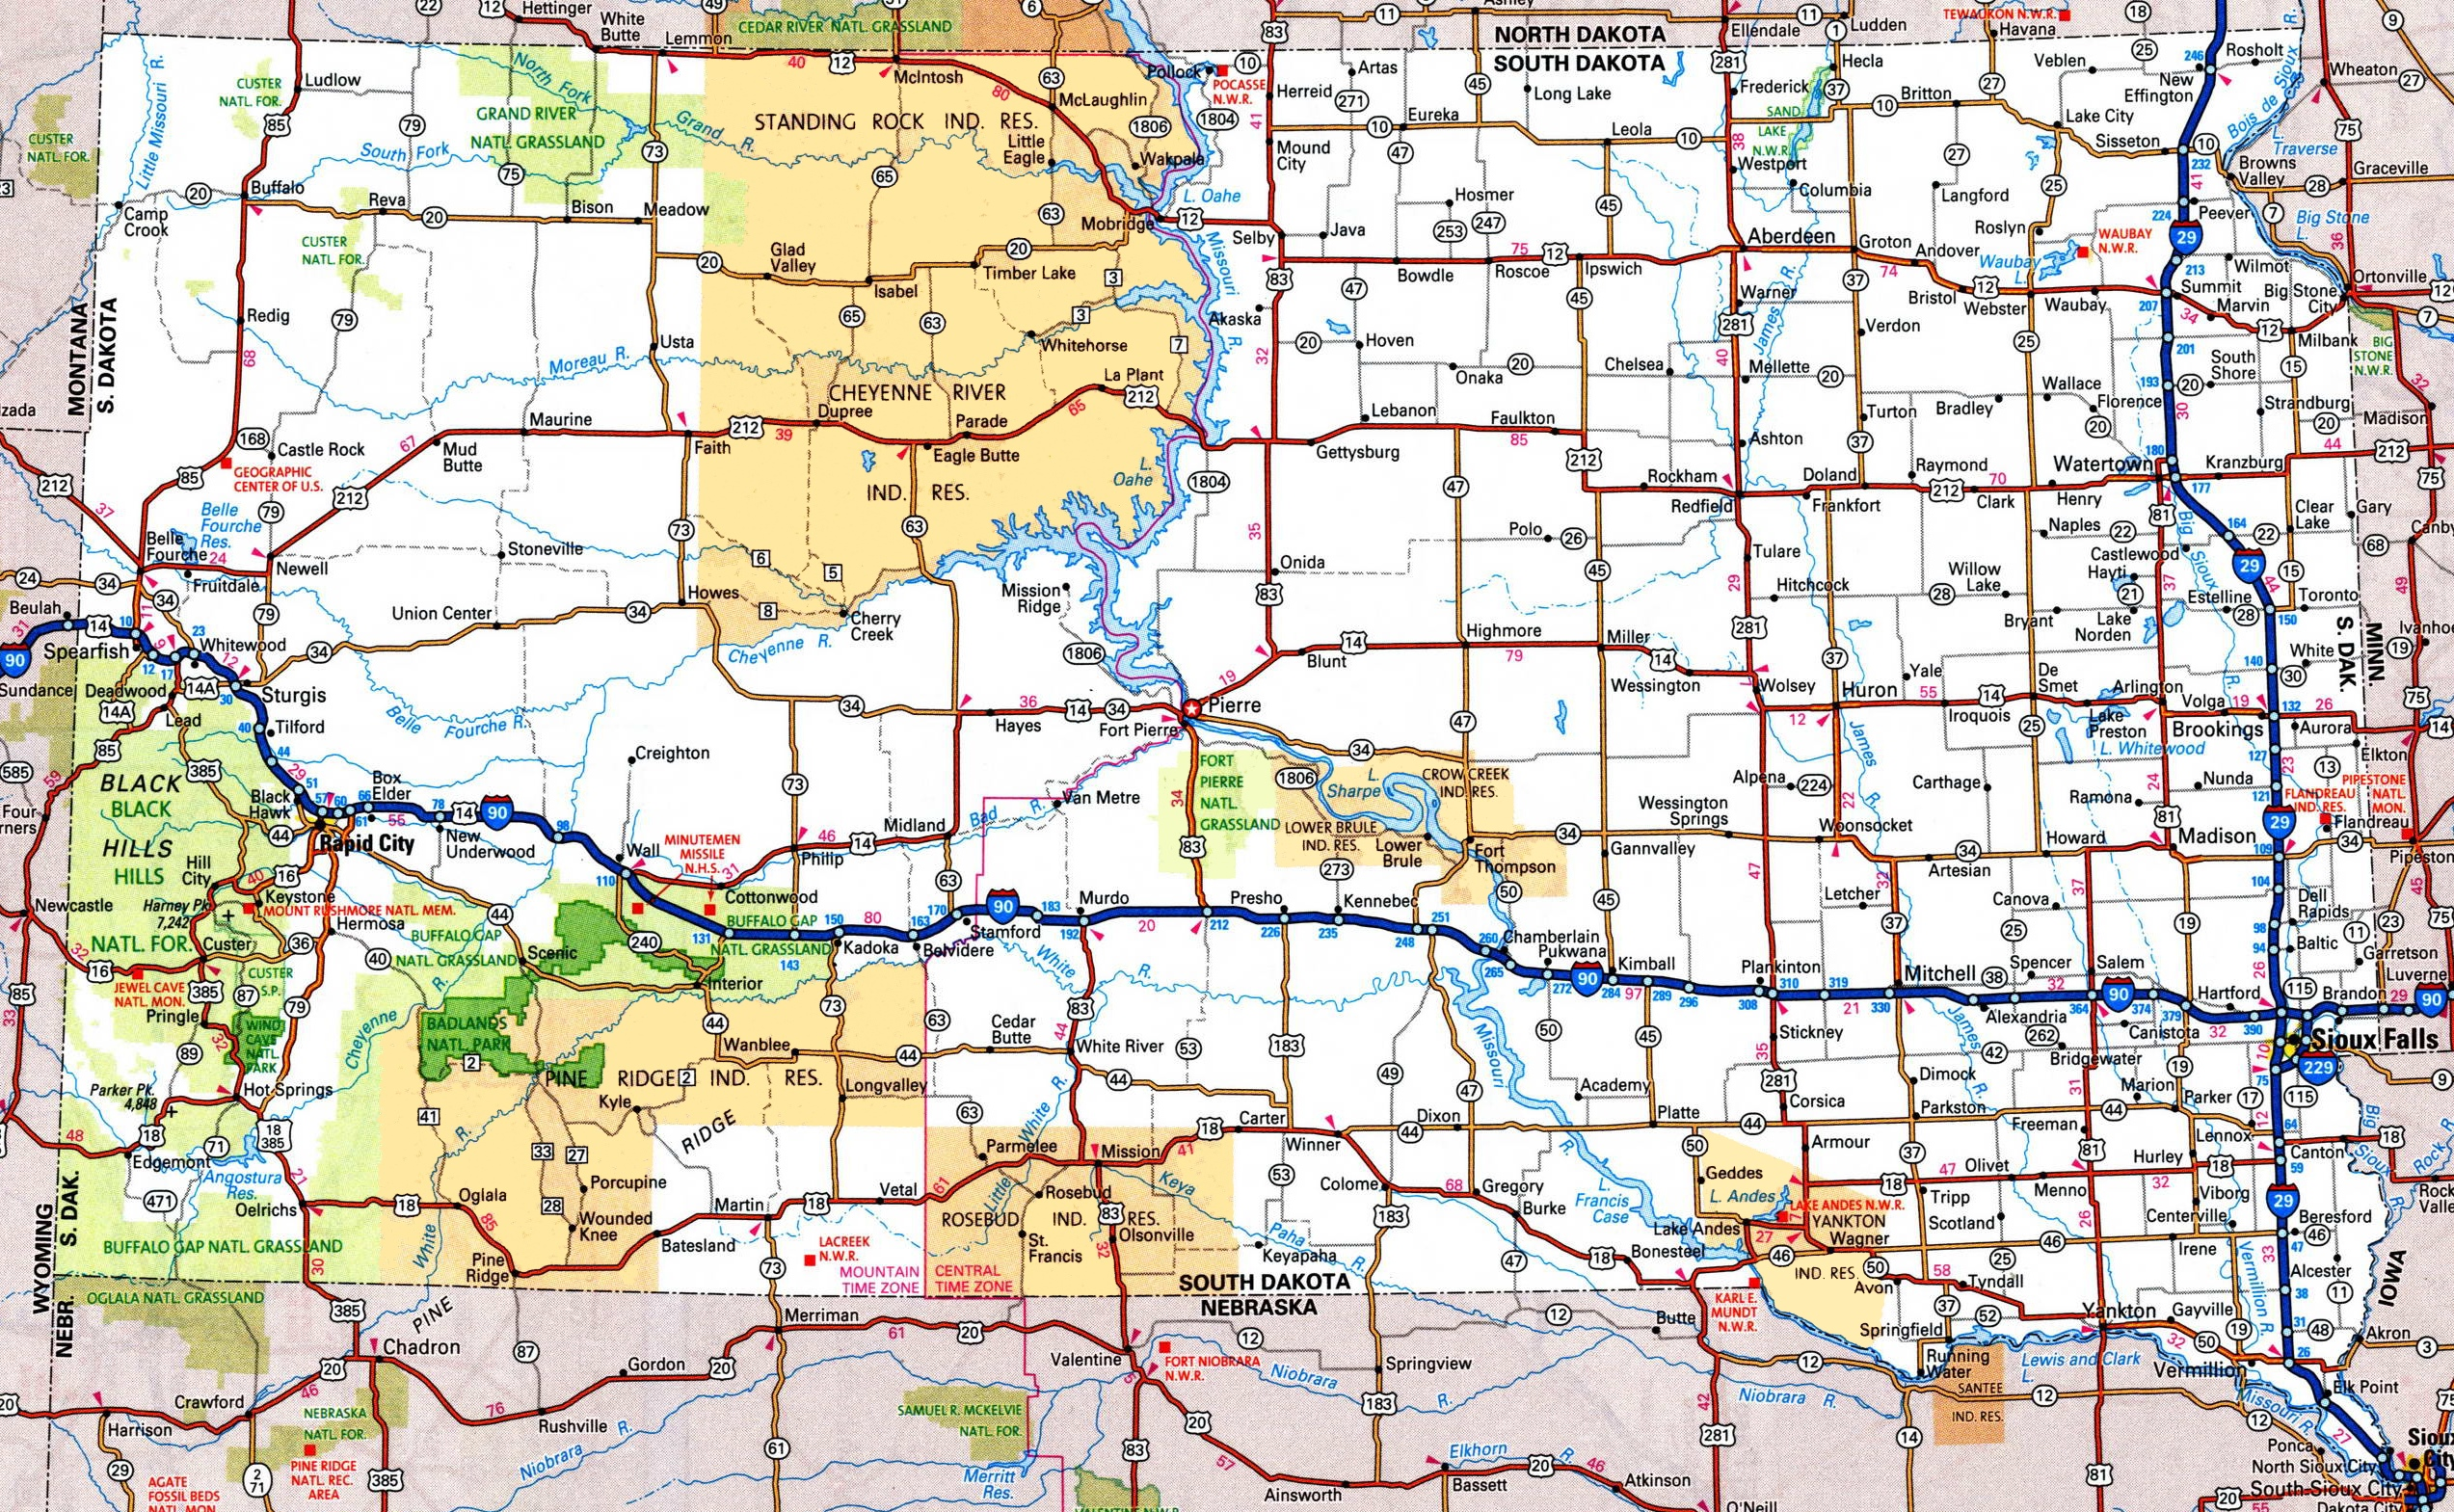 South Dakota Road Map - Map of south dakota